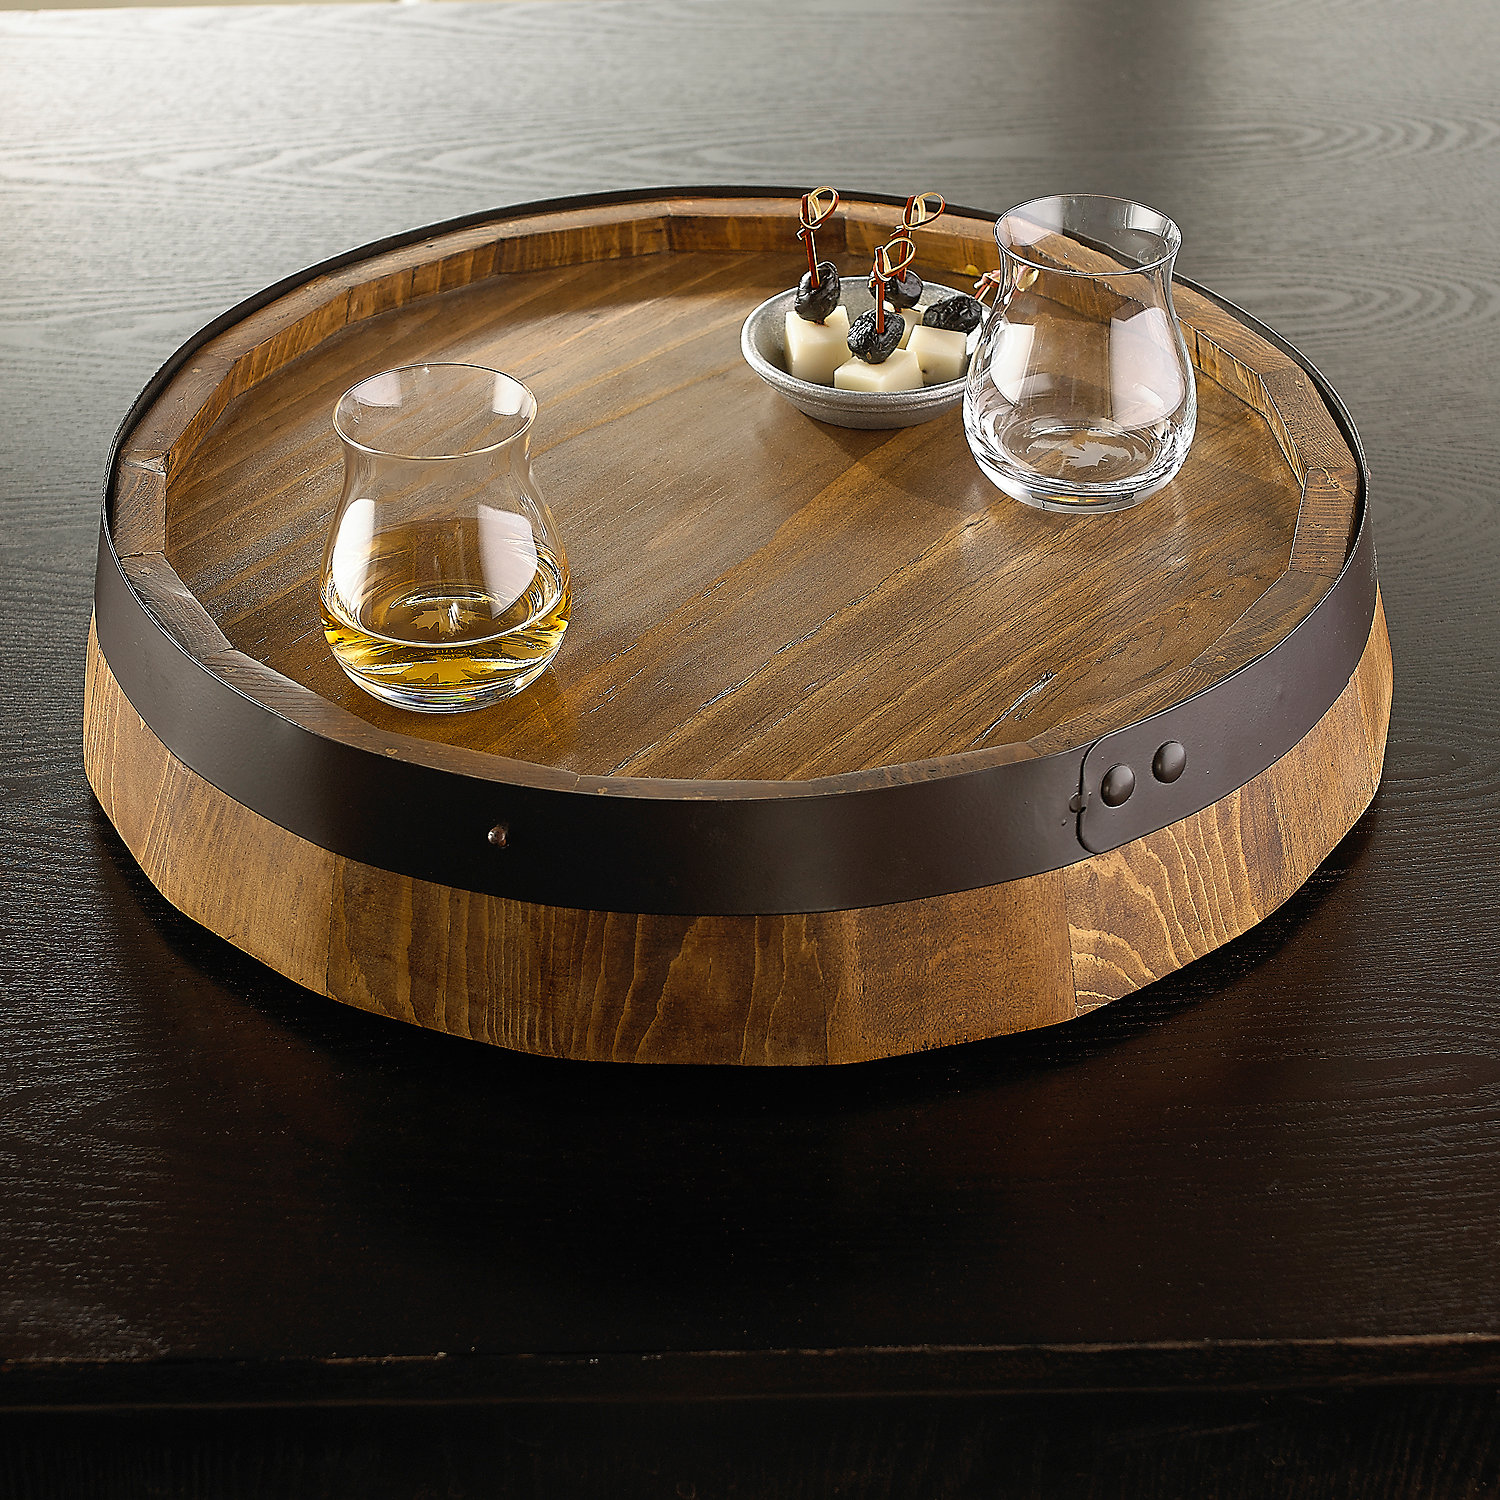 Awesome wine barrel lazy susan for furniture accessories ideas with personalized wine barrel lazy susan